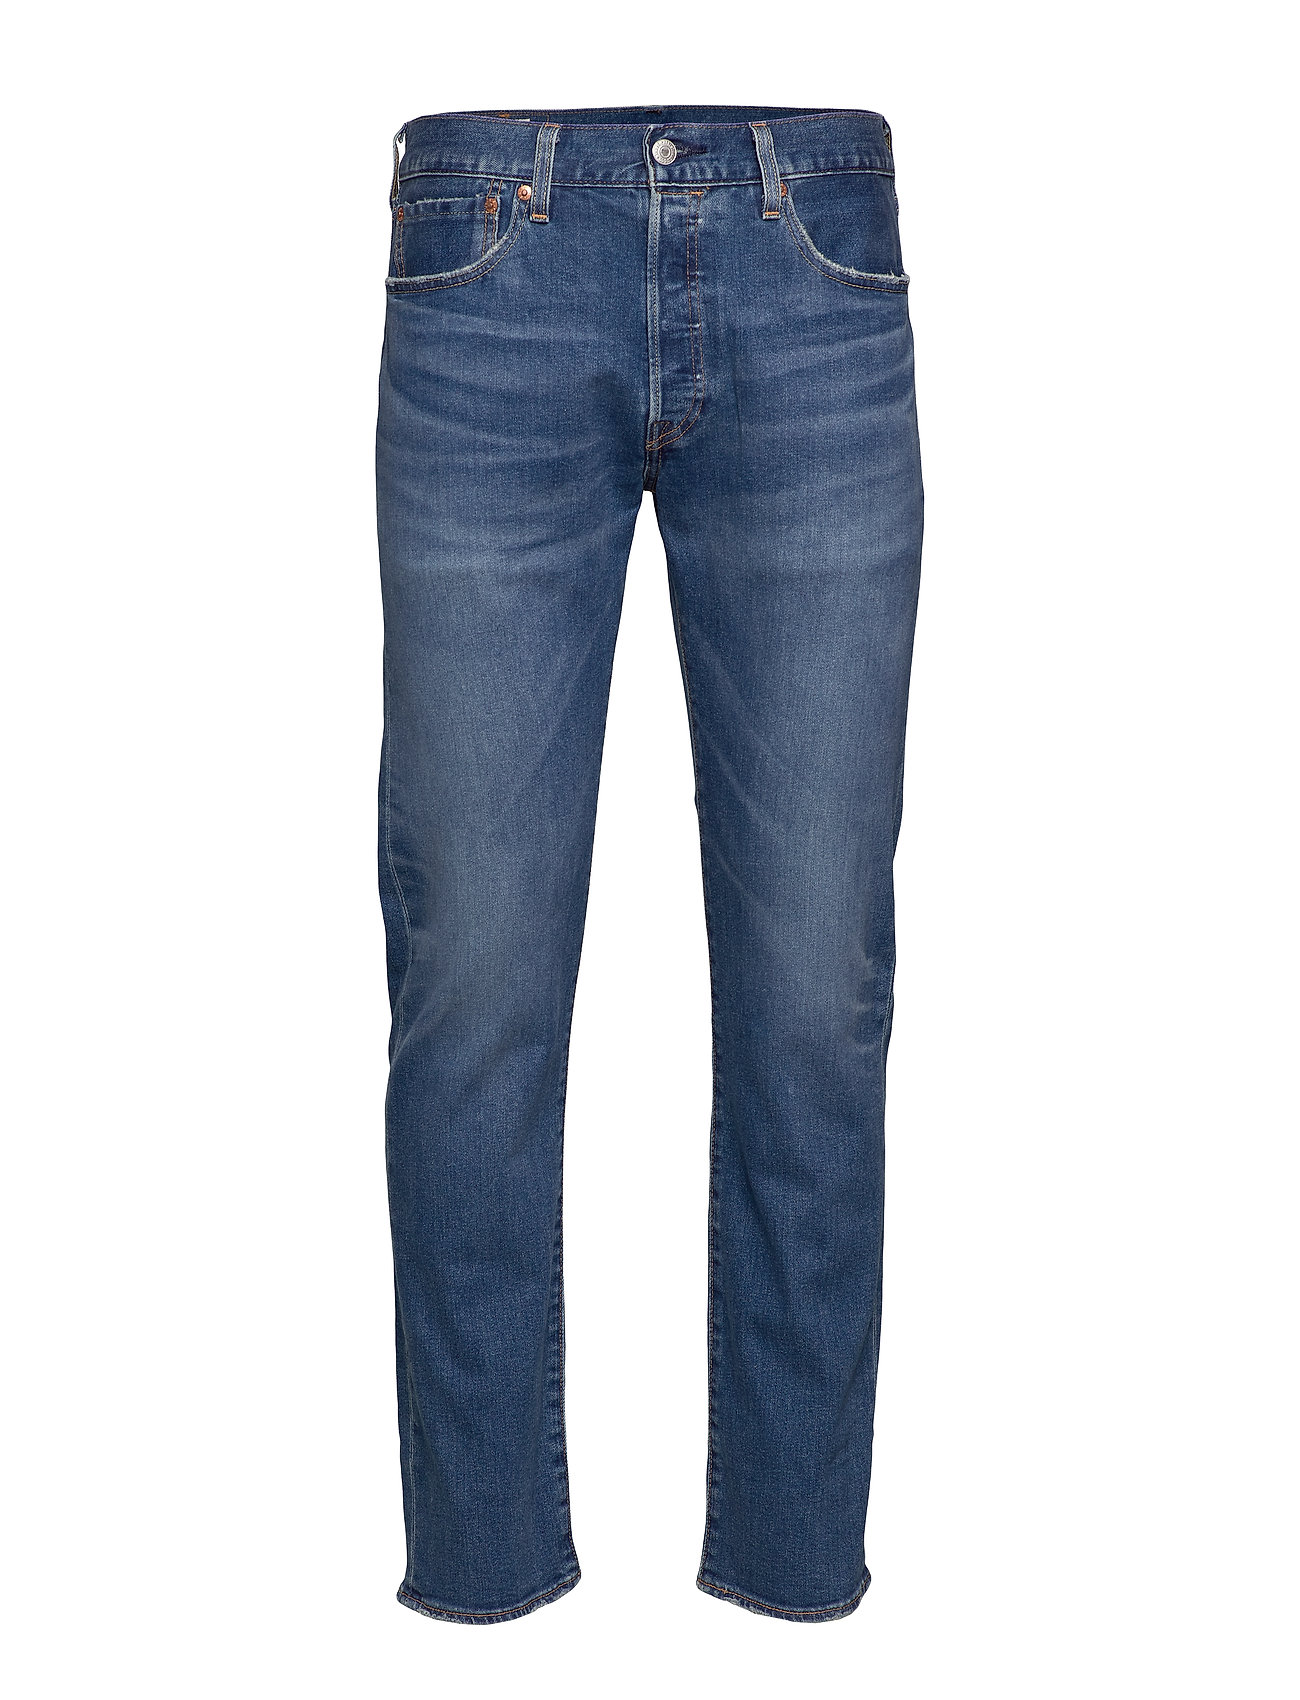 Image of 501 Levisoriginal Key West Sky Jeans Blå LEVI´S Men (3277931913)